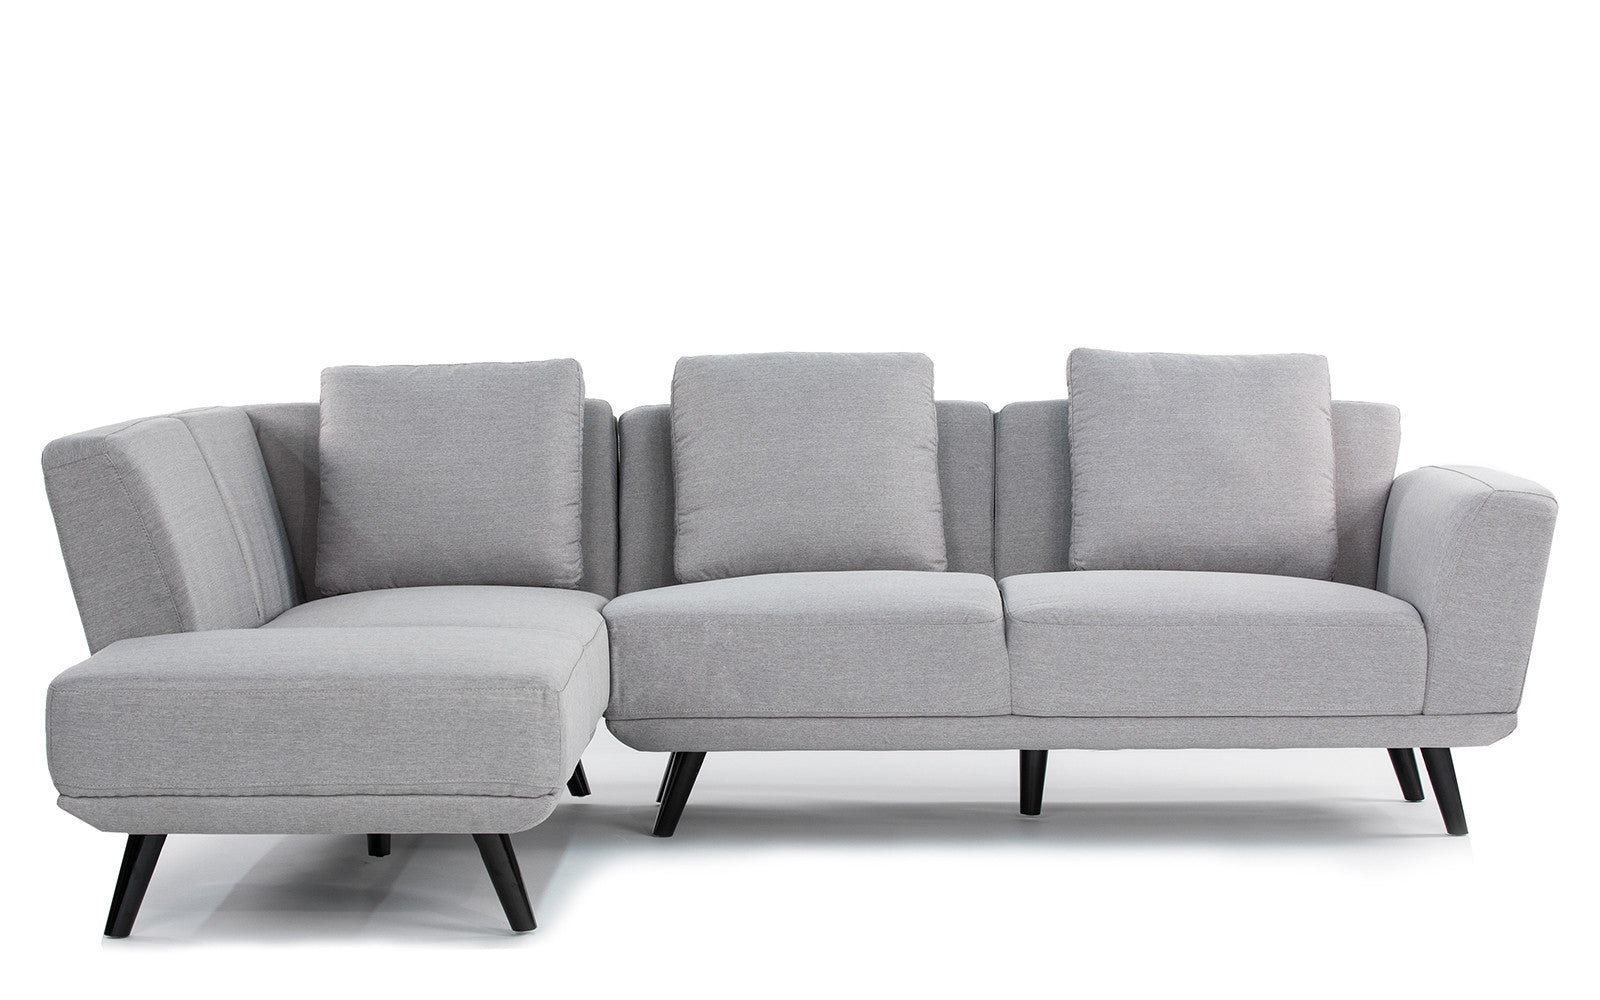 Galleria Mid Century Modern Sectional - Light Grey  sc 1 st  Sofamania : black modern sectional - Sectionals, Sofas & Couches